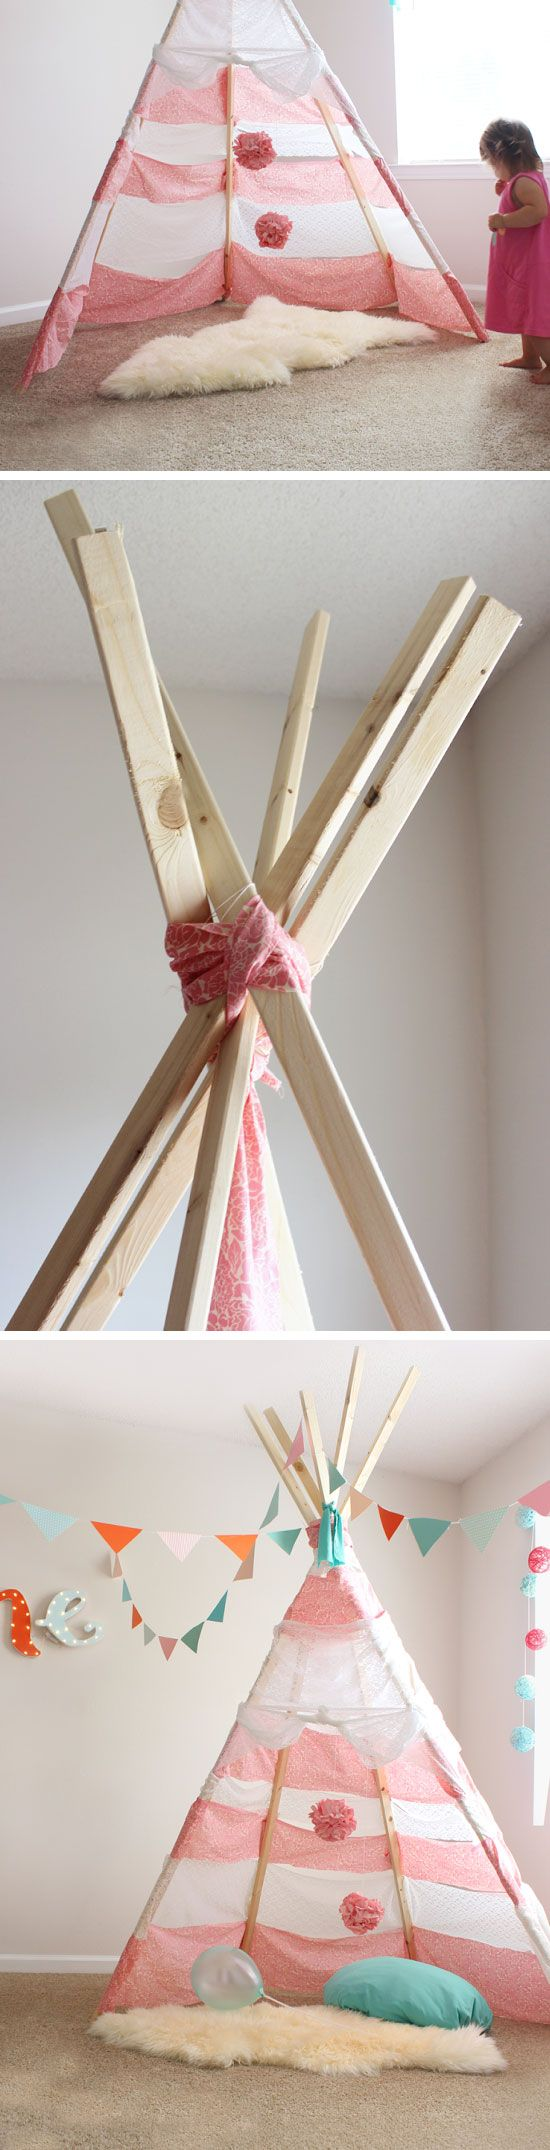 $30 DIY No Sew Teepee | Click Pic for 20 DIY Decorating Ideas for Girls Room | DIY Bedroom Decorating Ideas for Girls